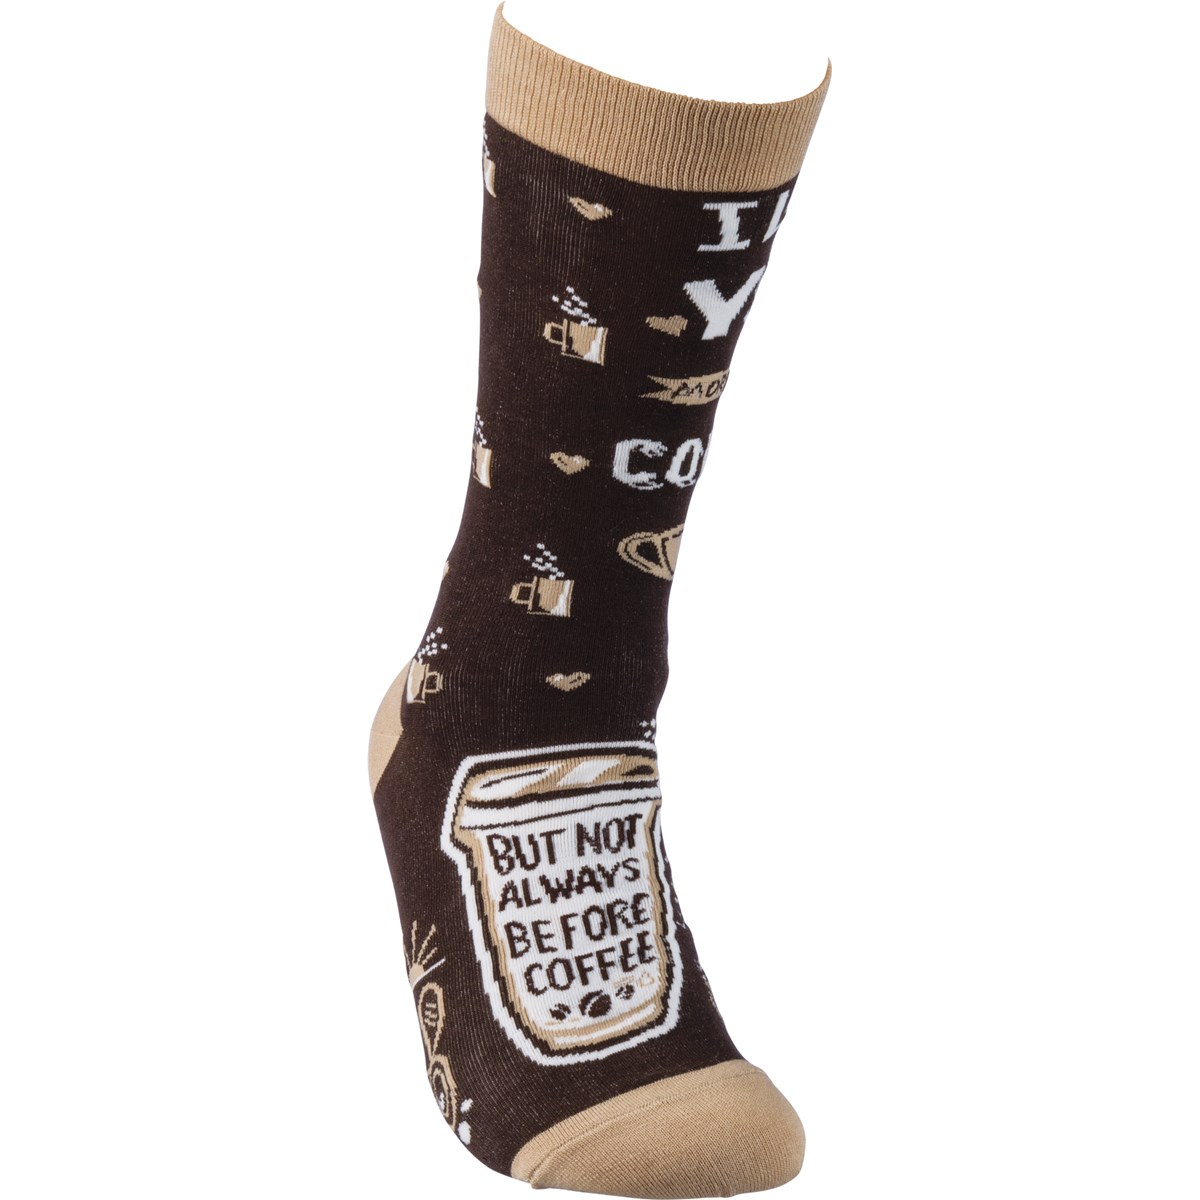 Socks - I Love You More Than Coffee - One Size Fits Most - Cotton, Nylon, Spandex